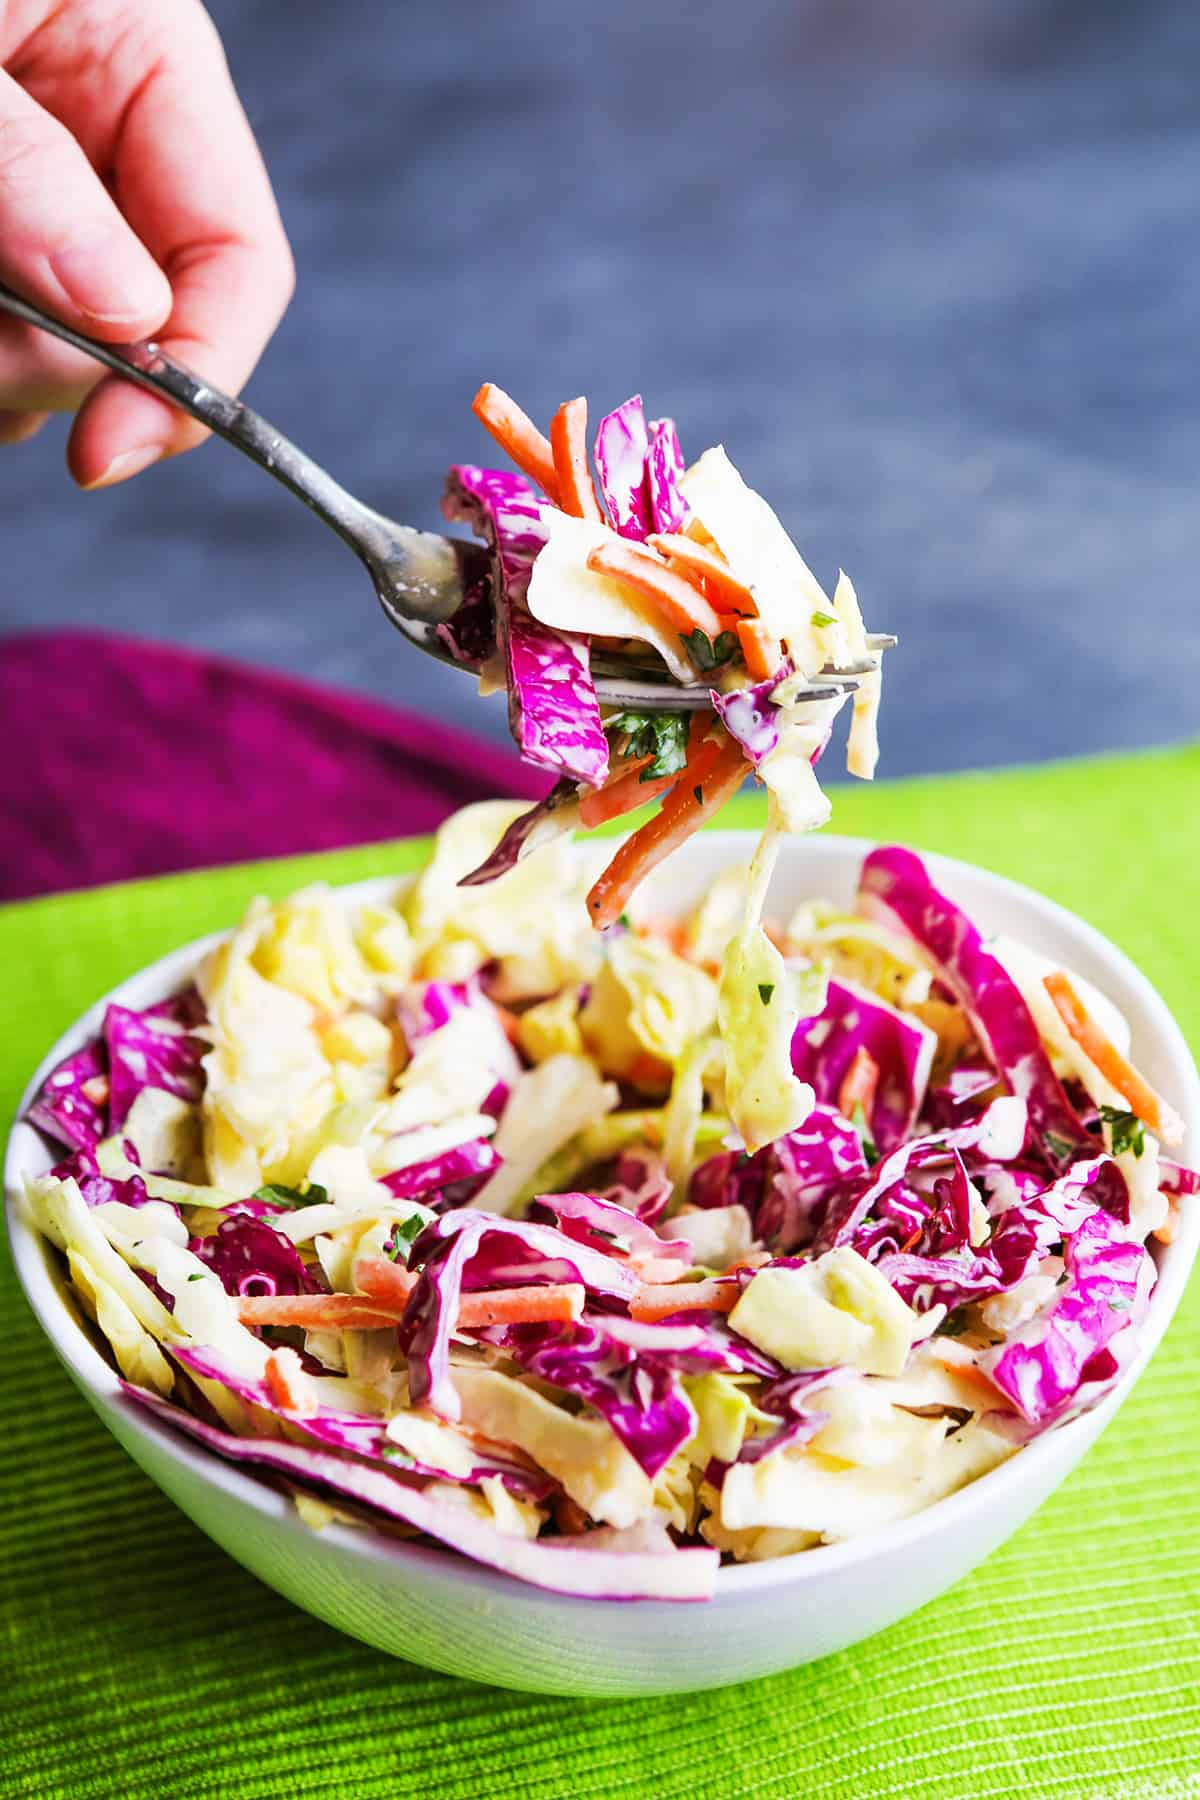 Fork pulling a bite of coleslaw out of a bowl.